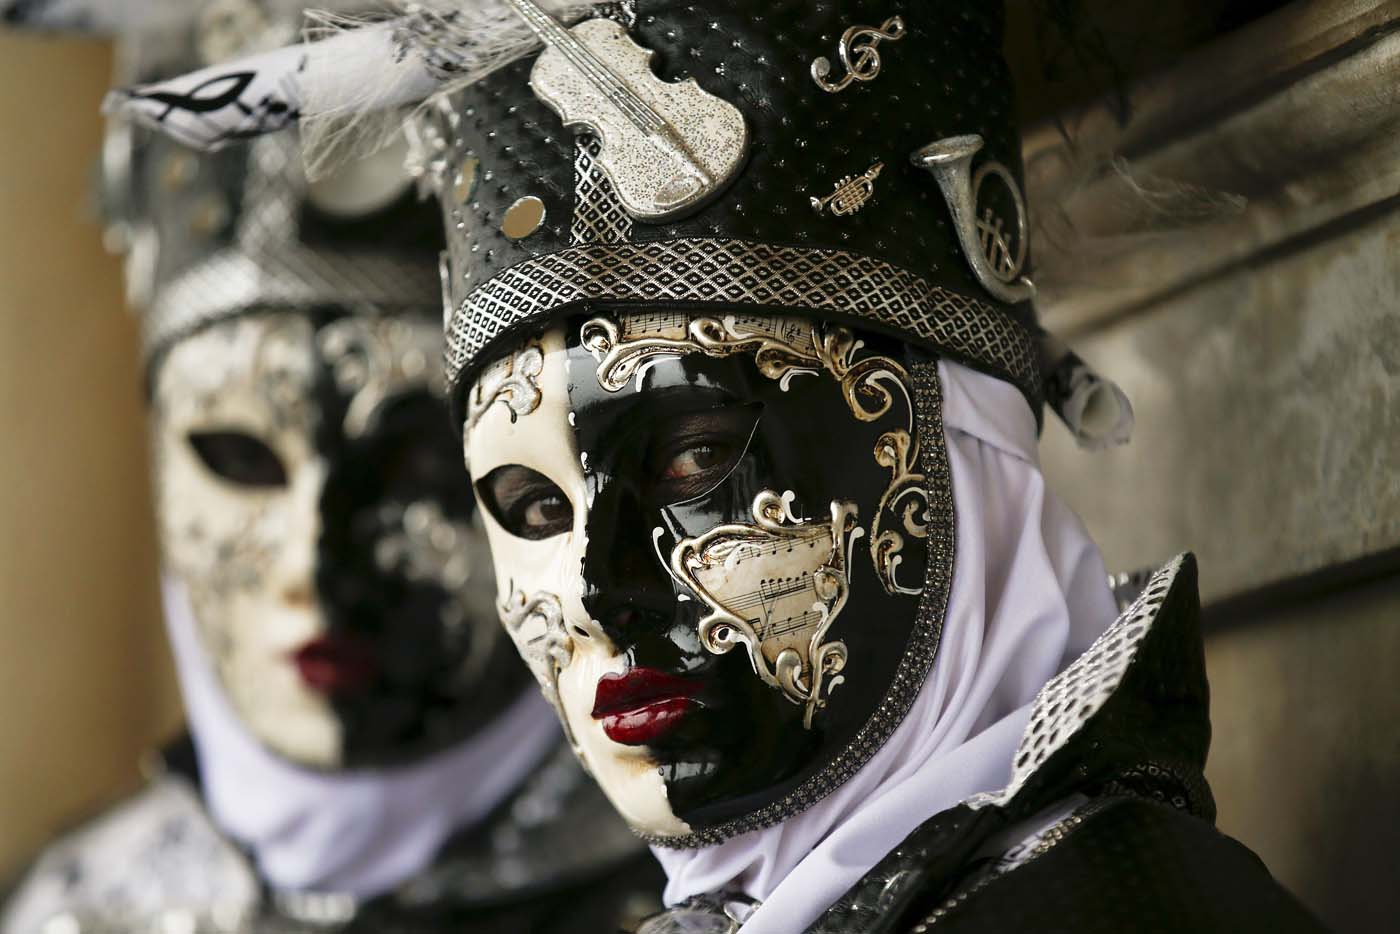 Masked revellers pose during the Venice Carnival, in Piazza San Marco January 30, 2016. REUTERS/Alessandro Bianchi